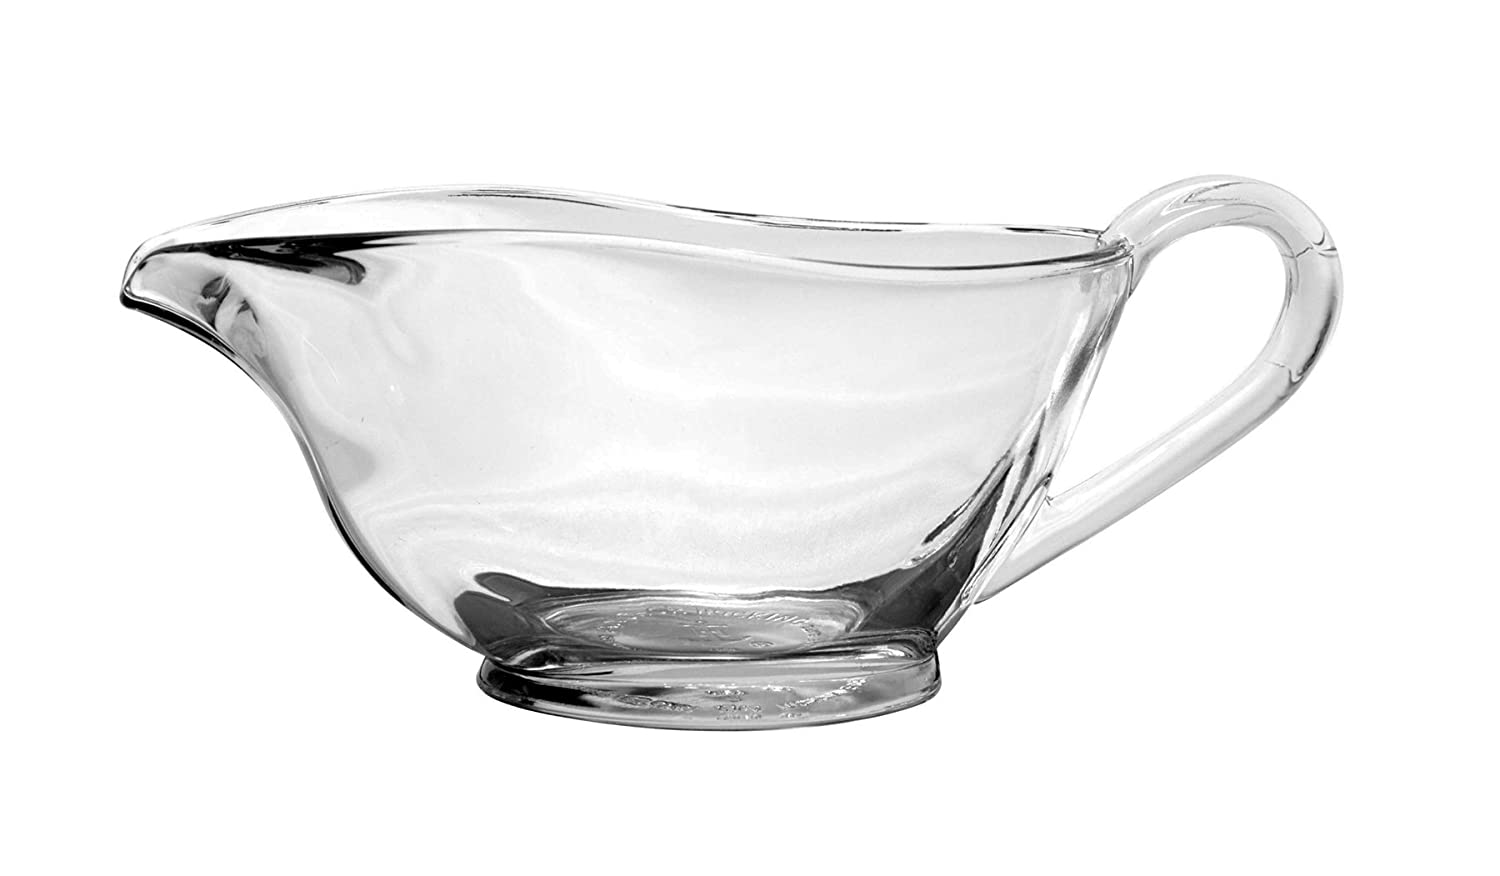 Anchor Hocking 77938 Presence Gravy Boat, Glass, 10 oz, Clear, Regular Fox Run Craftsmen